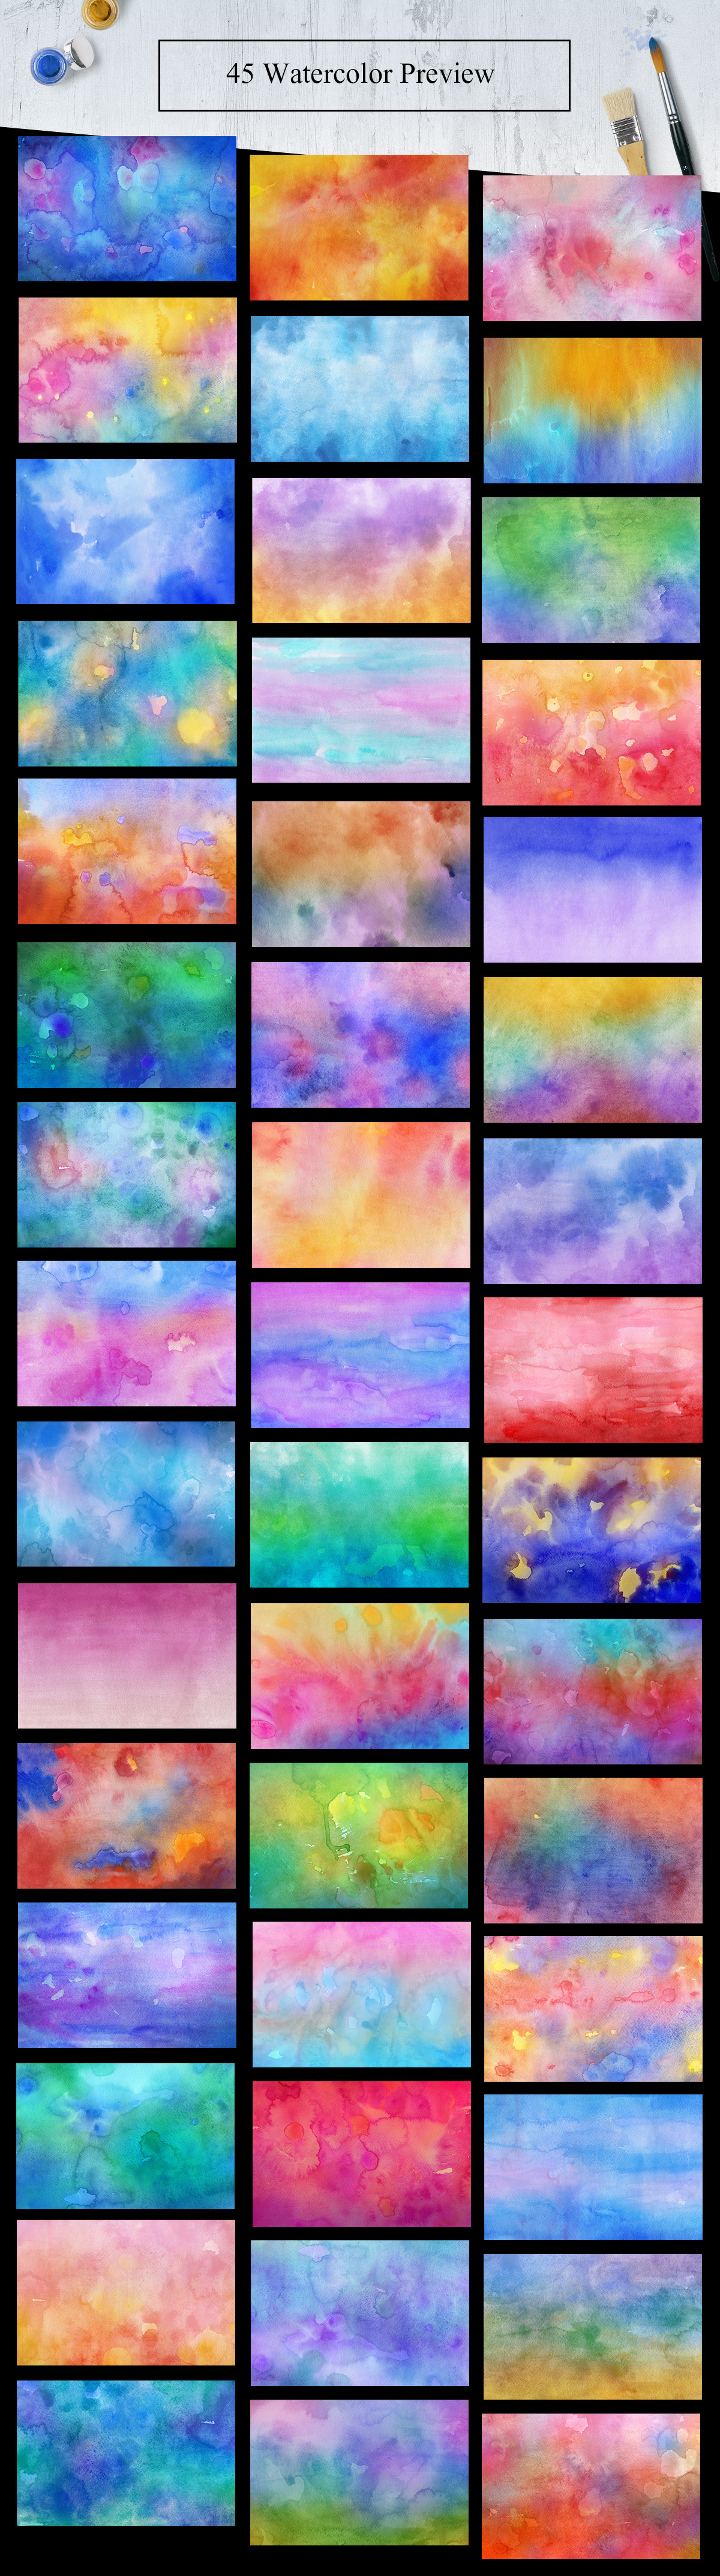 45 Watercolor Backgrounds example image 2